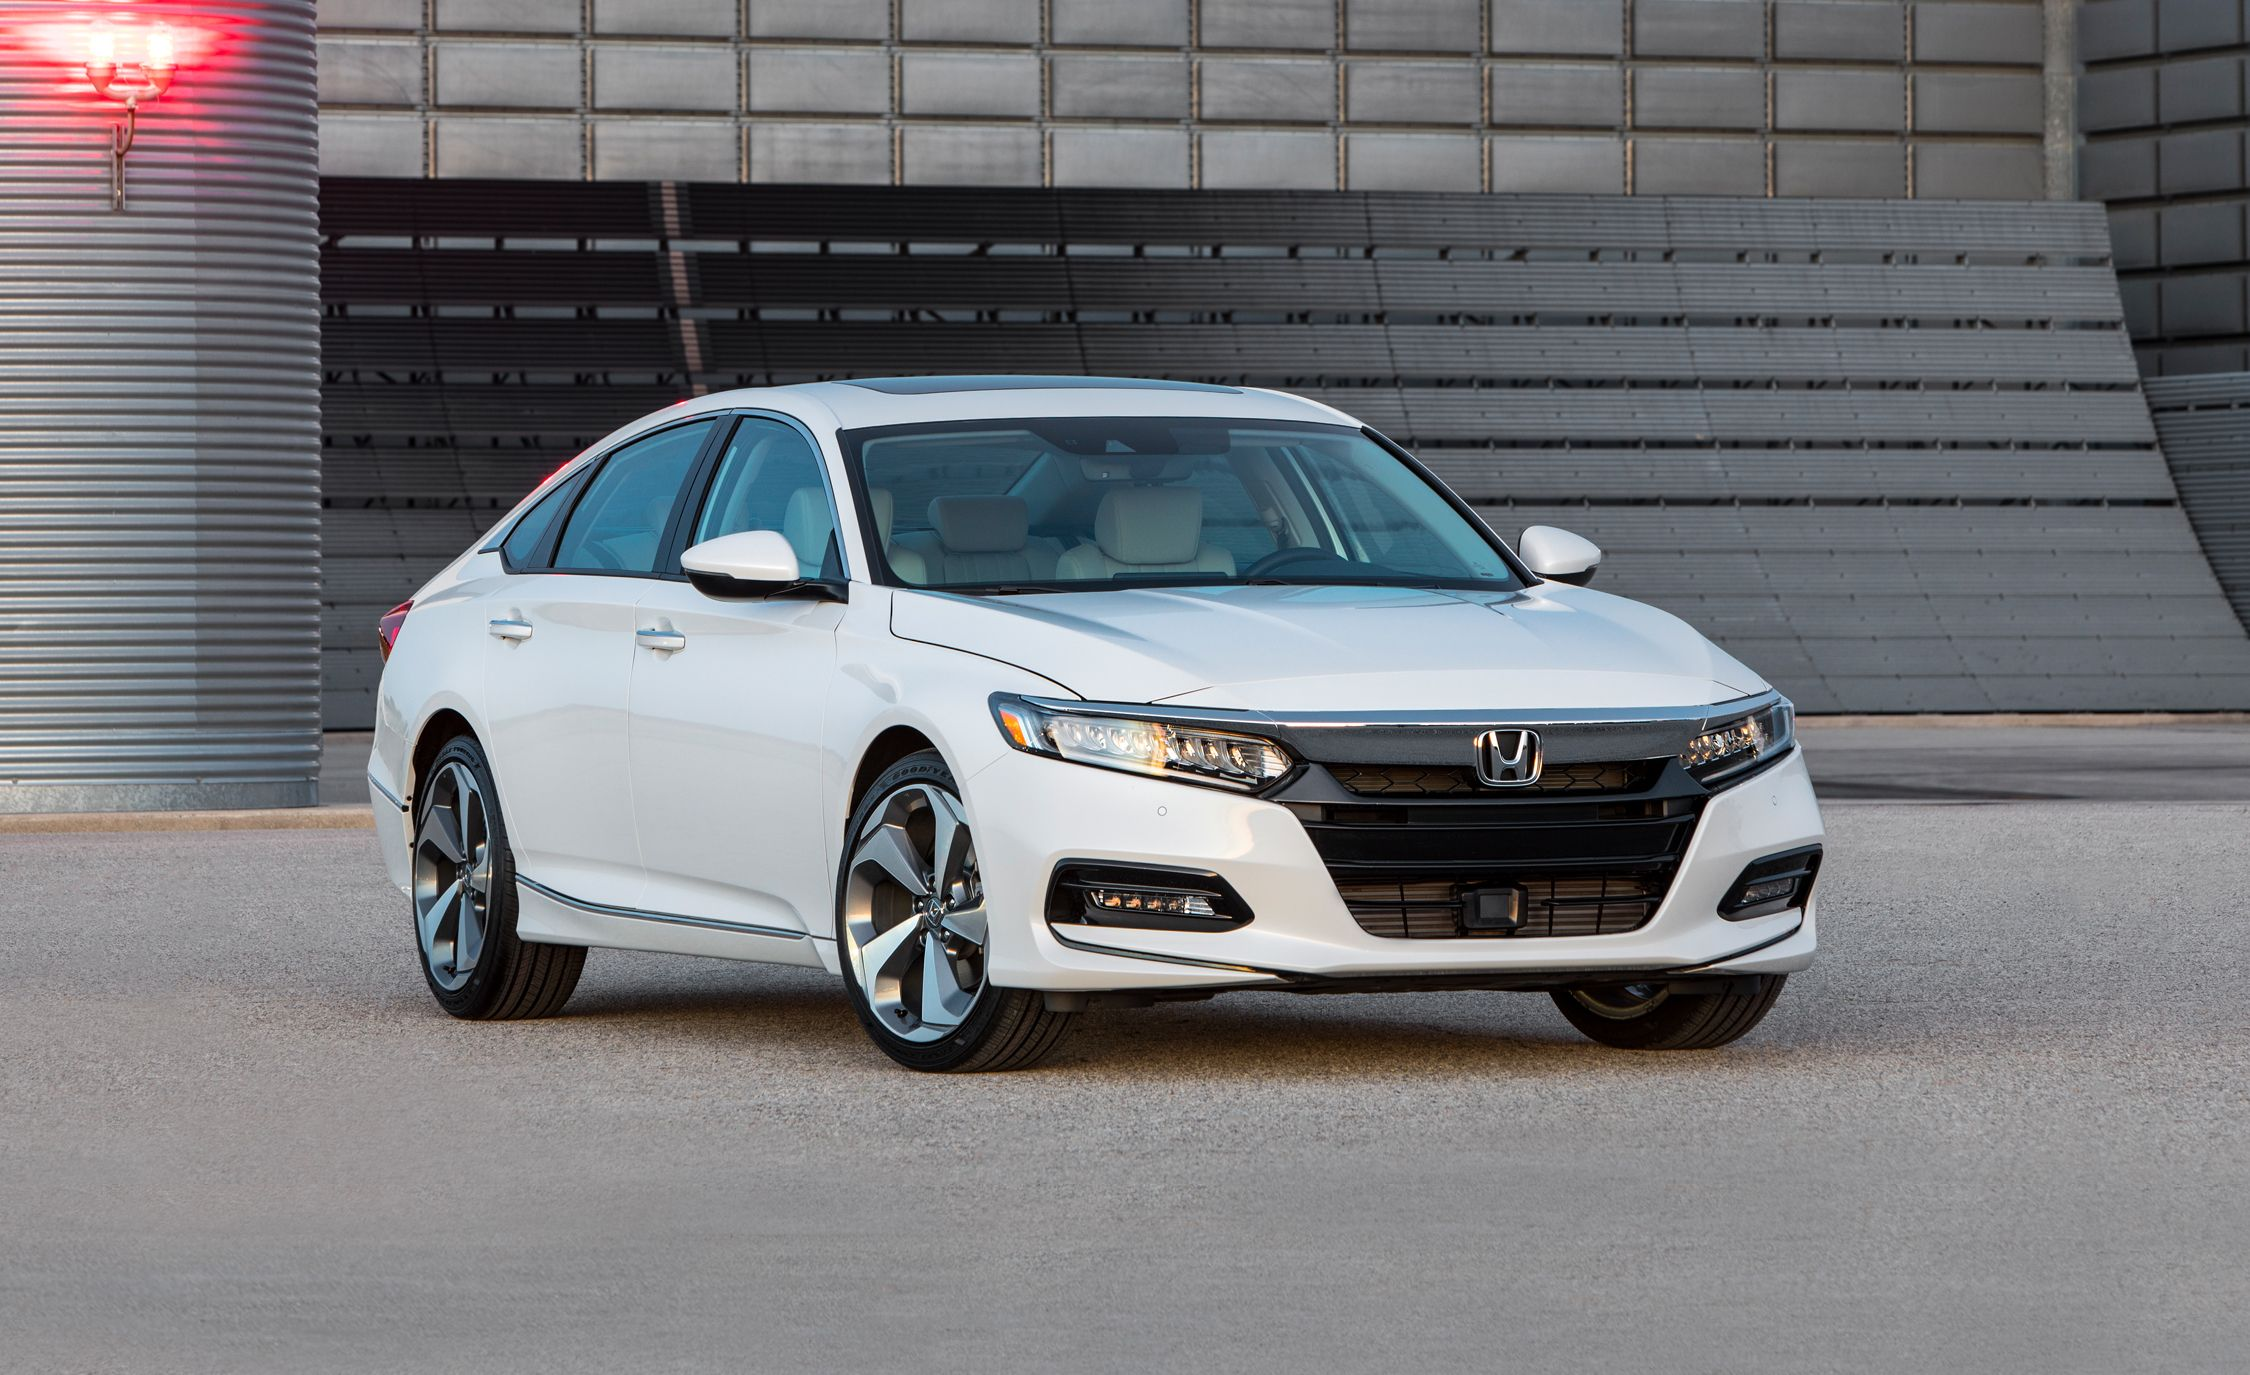 Honda Accord Sport 2018 Price U003eu003e 2018 Honda Accord Officially Revealed! |  News |